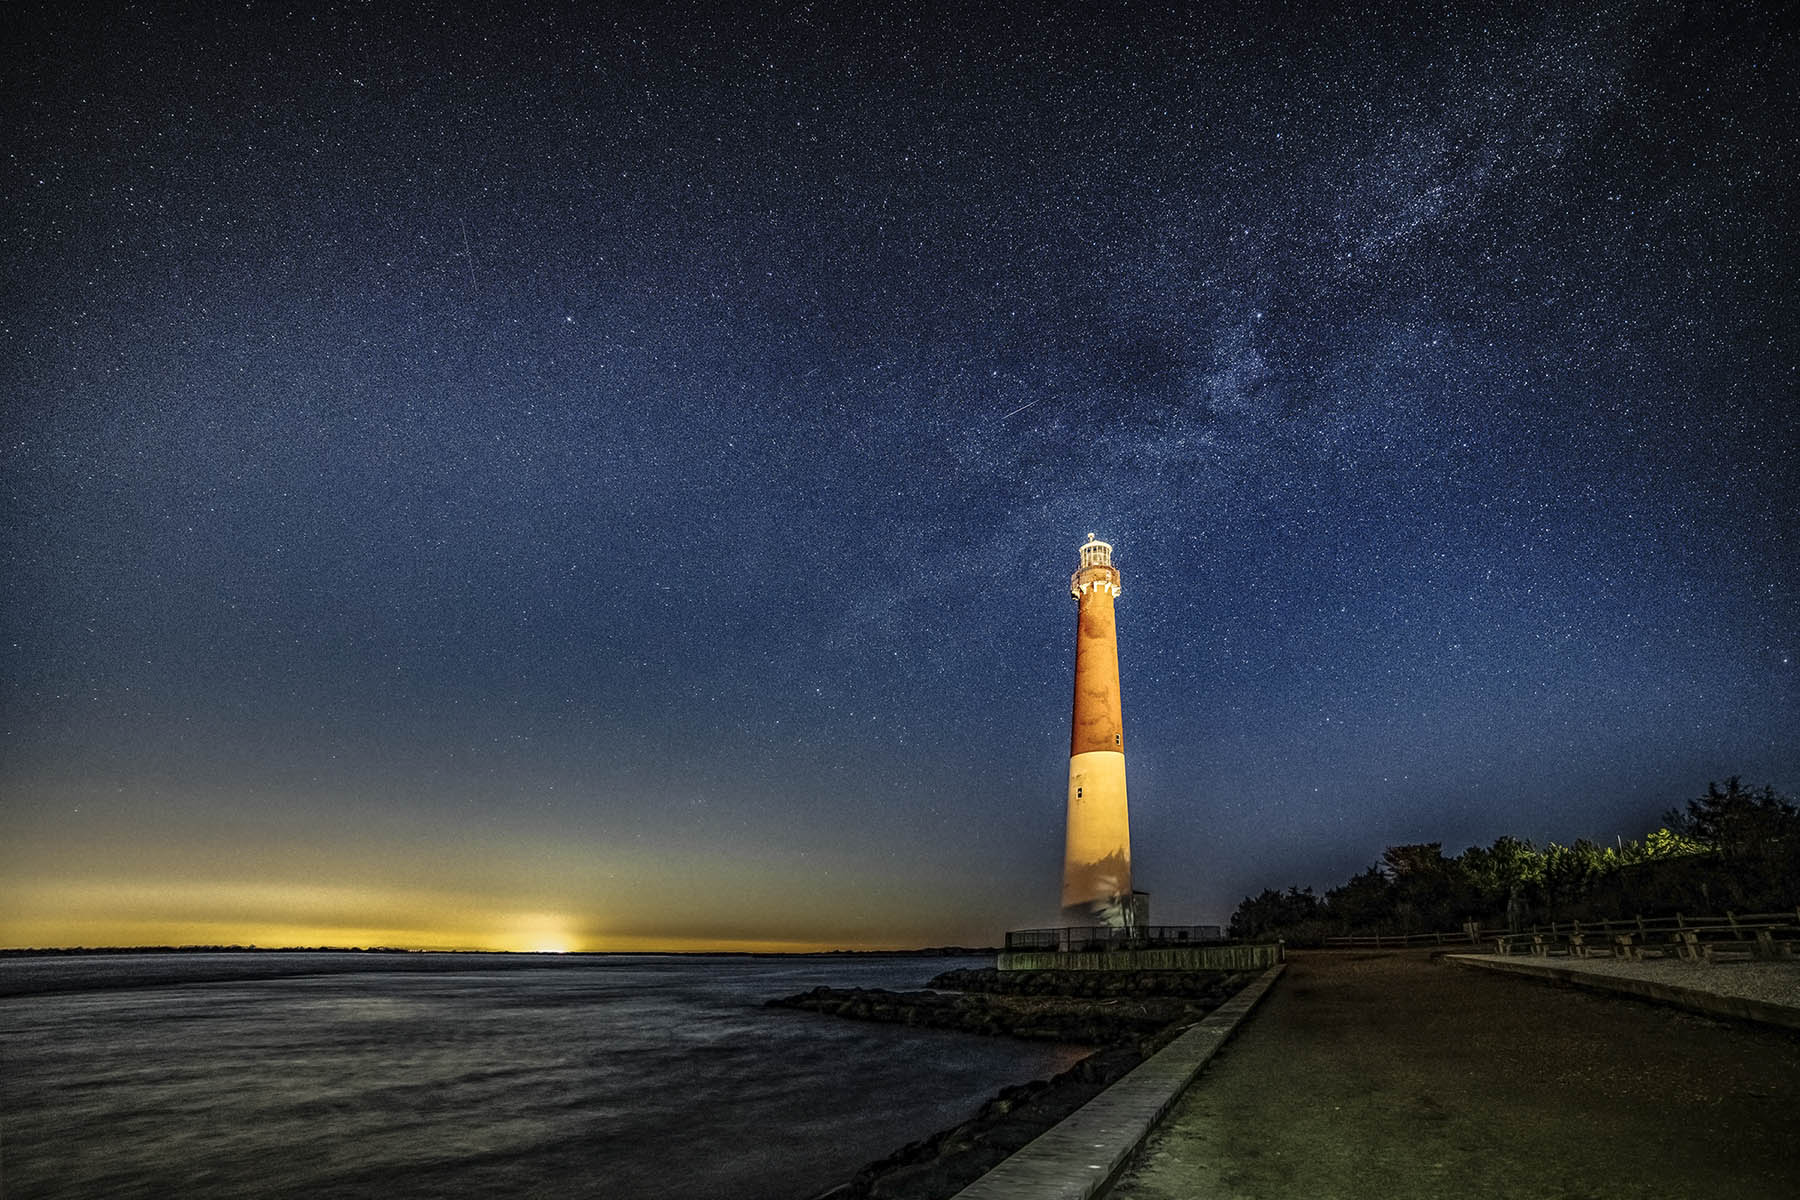 Barnegat Twilight | Author PAUL BRACEY - PaulBracey | PHOTO FORUM